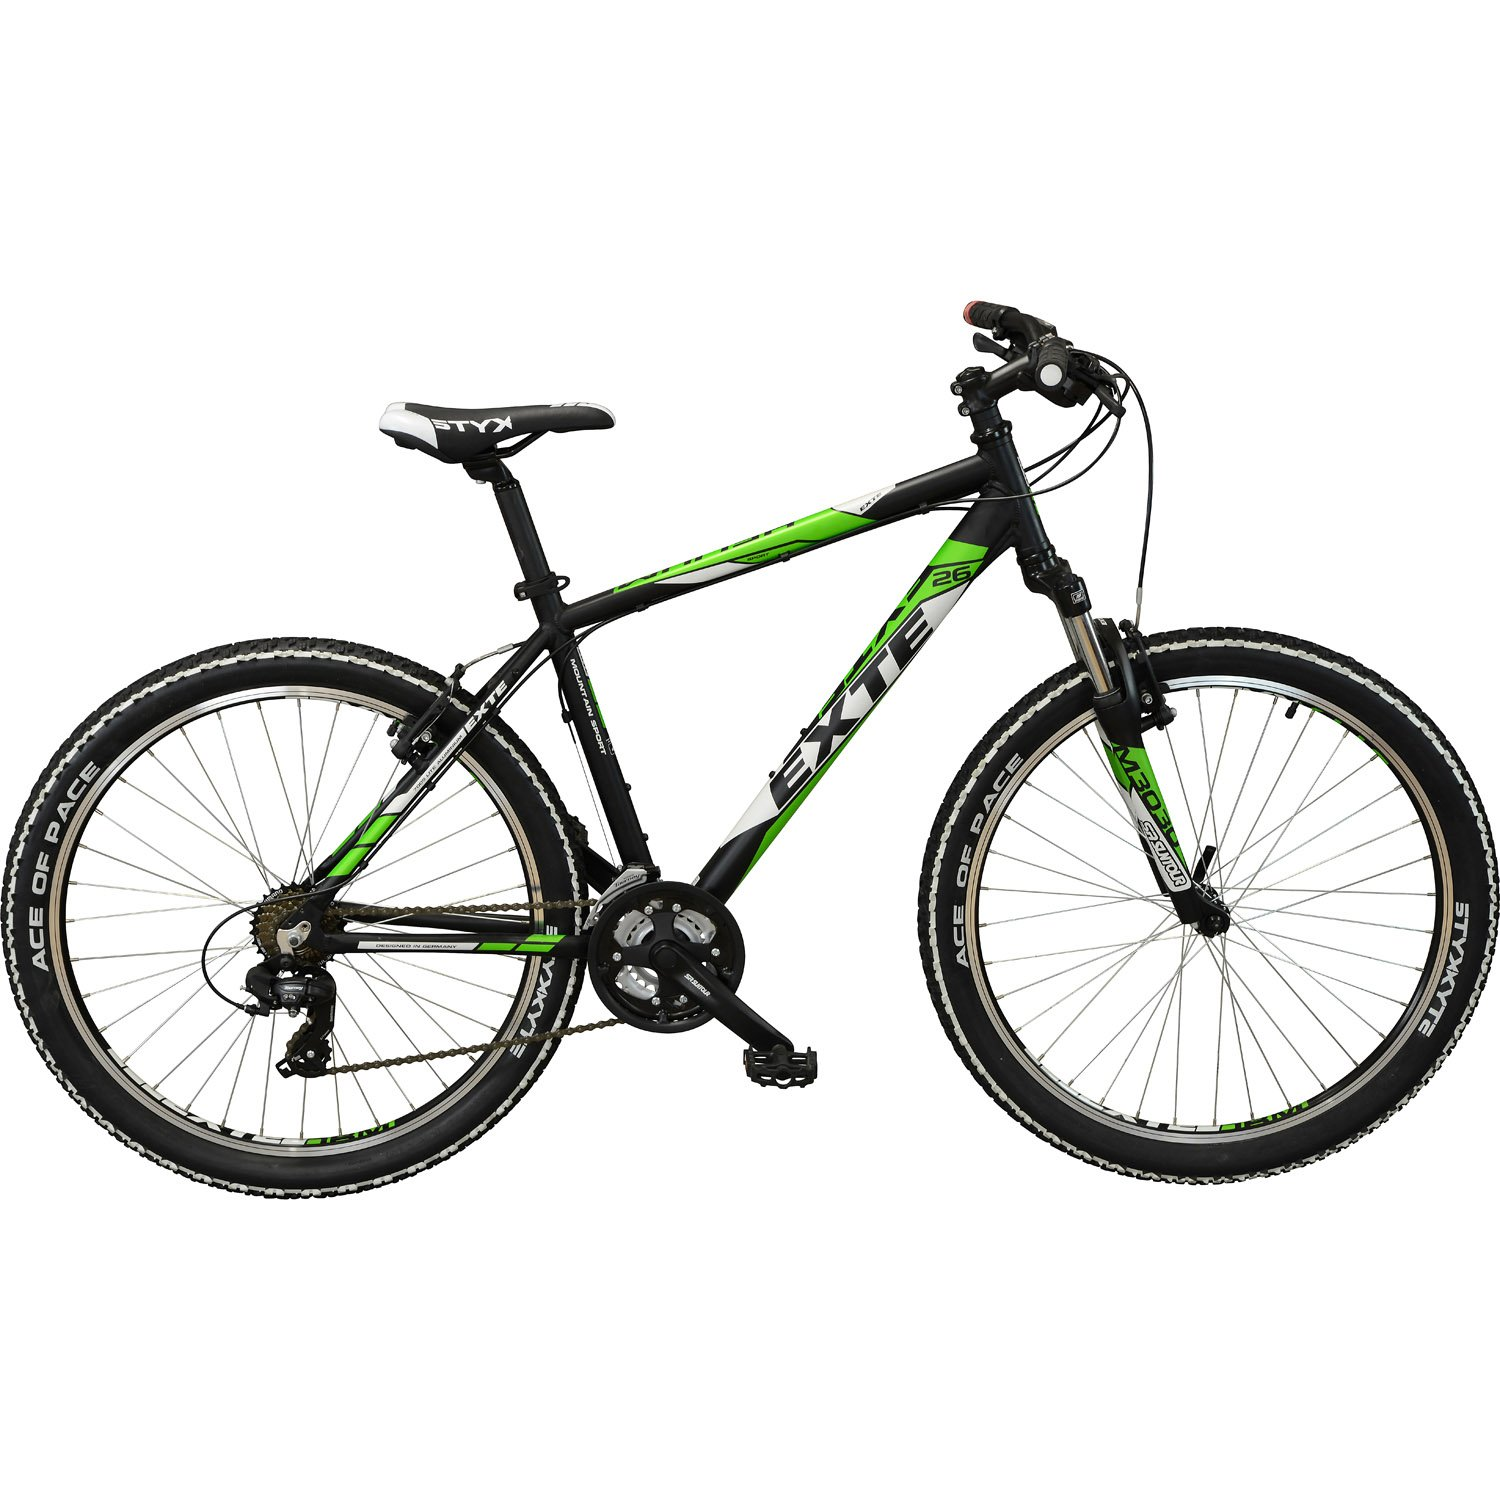 exte helium mountainbike 26 zoll neon gelb 37 cm. Black Bedroom Furniture Sets. Home Design Ideas